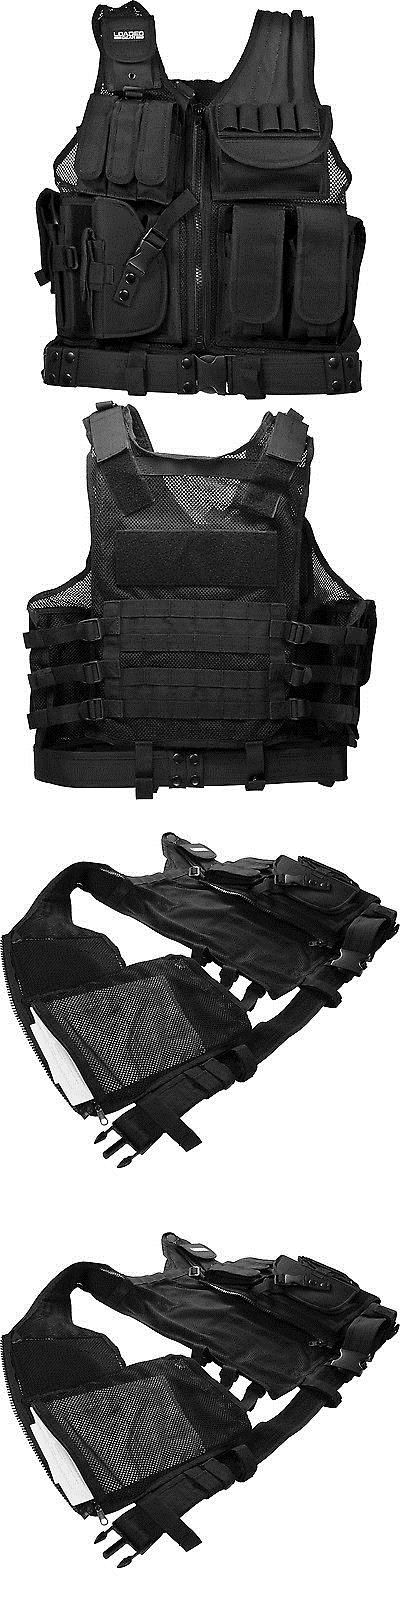 Other Tactical and Duty Gear 177902: Barska Bi12154 Vx-200 Customizable Loaded Gear Black Tactical Vest, Left Hand -> BUY IT NOW ONLY: $61.15 on eBay!